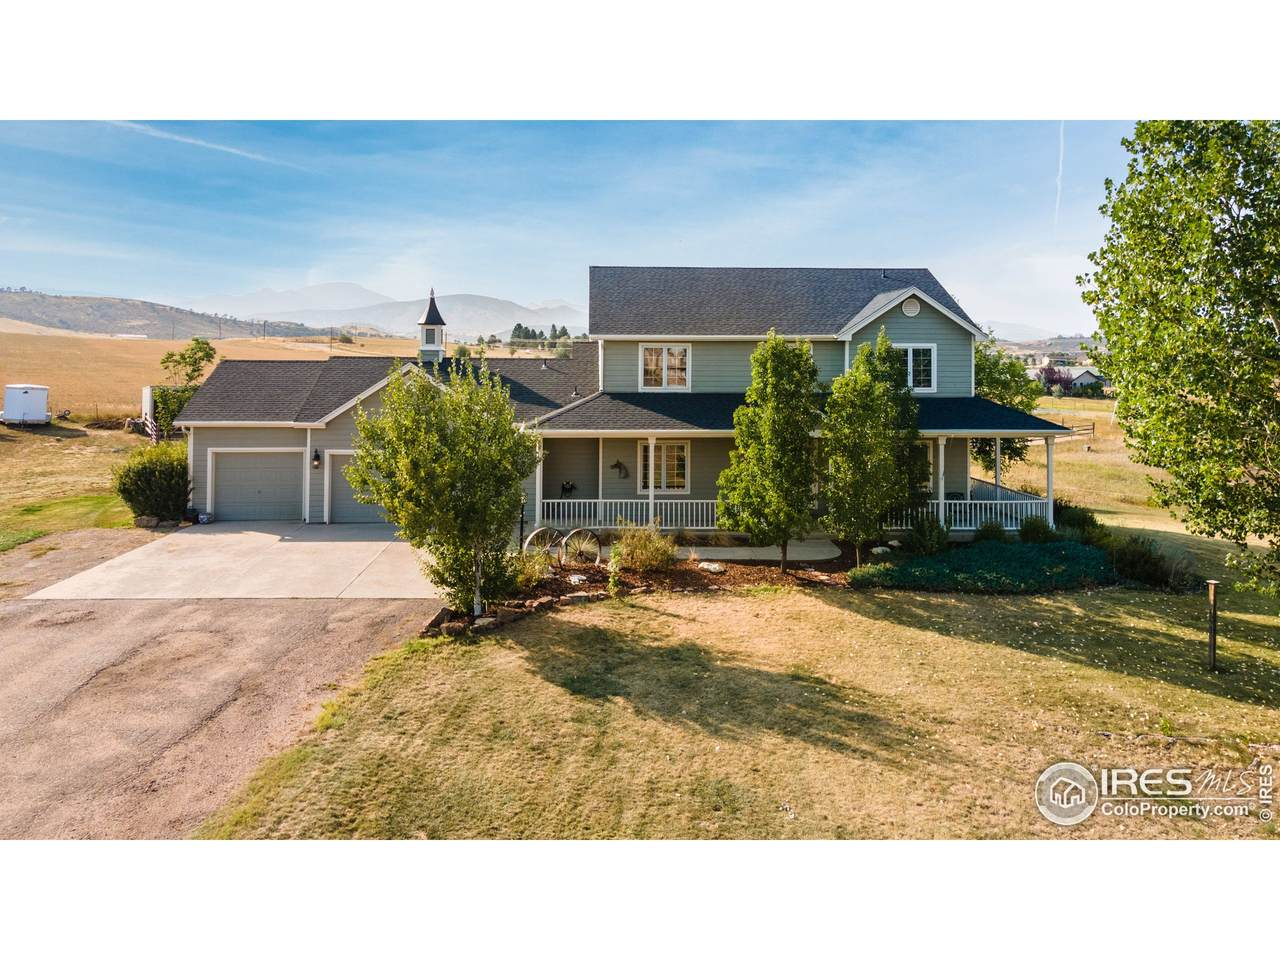 1489 Scenic Valley Dr - Photo 1